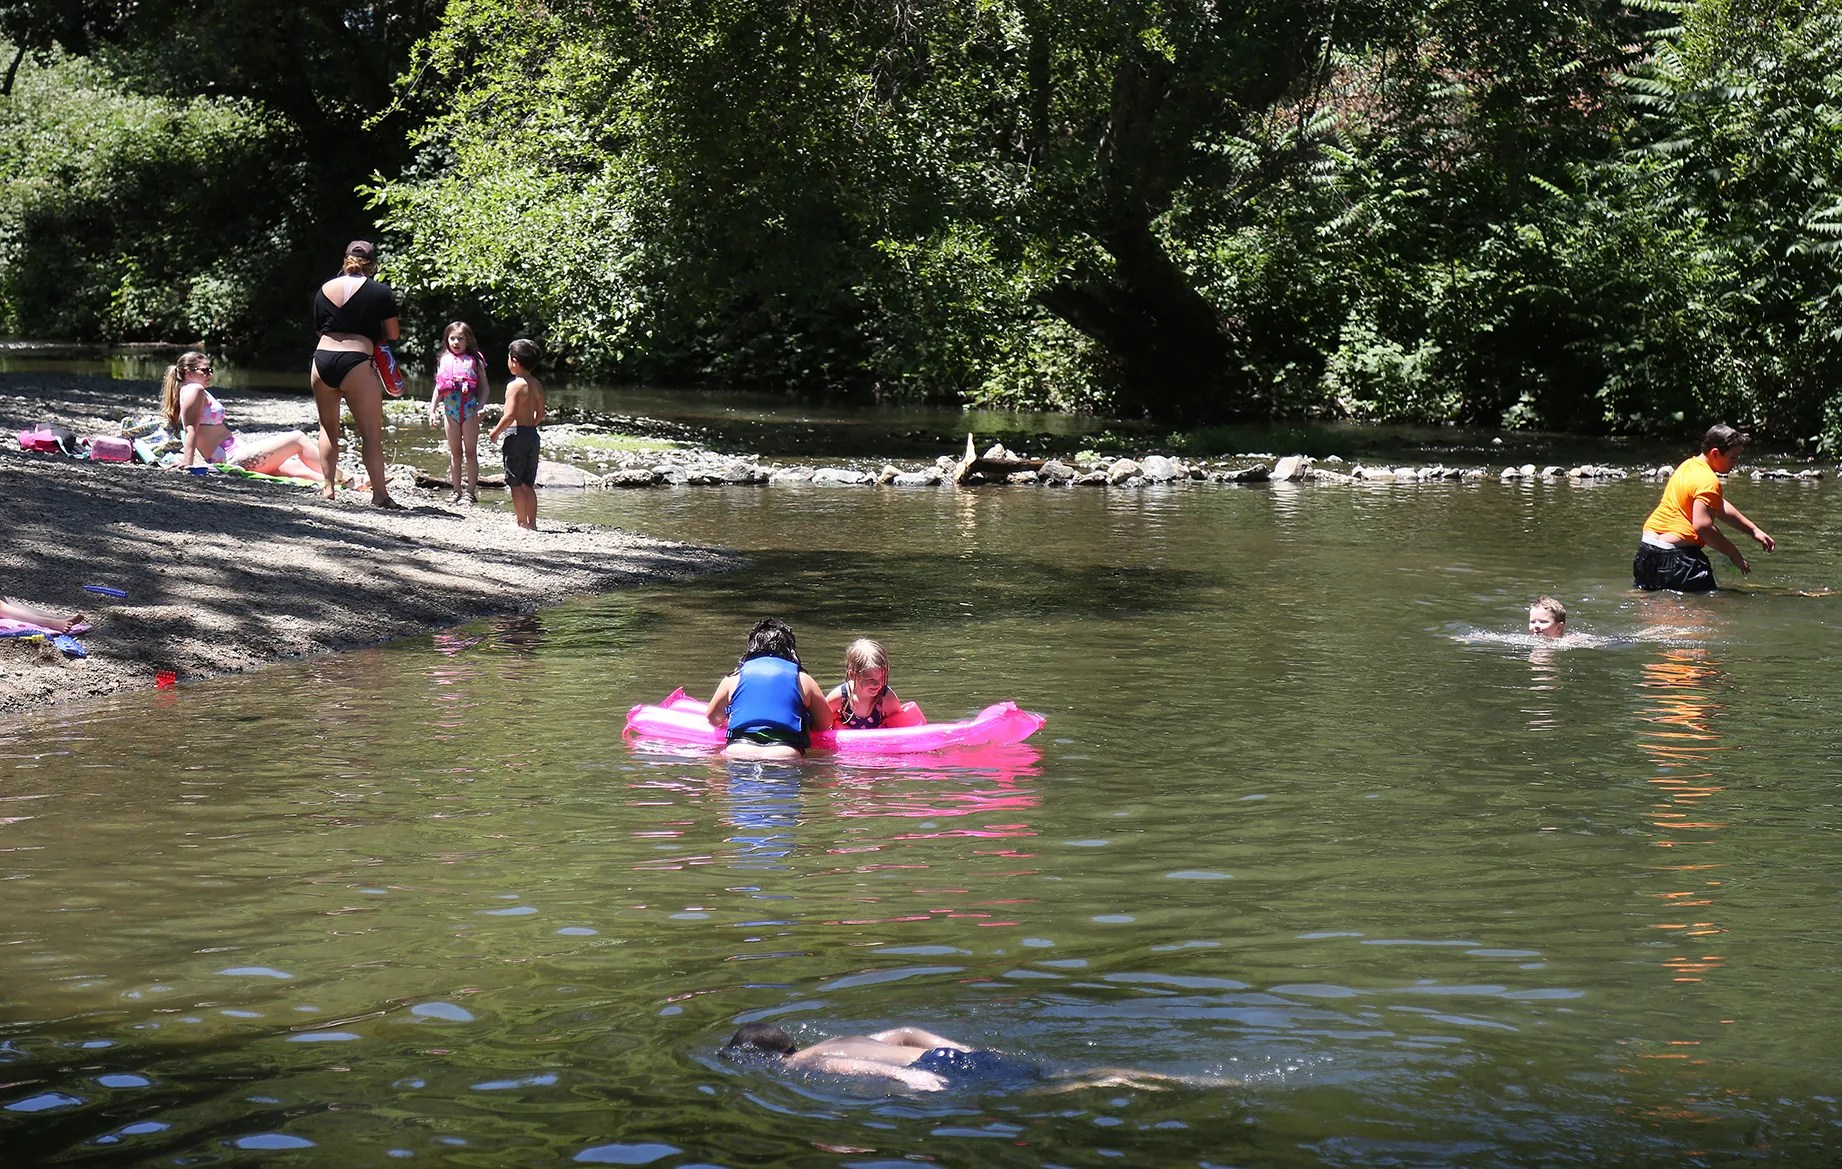 Families beat the heat in the calm and shallow waters of Squirrel Creek Tuesday afternoon, June 15, 2021, in  Western Gateway Park in Penn Valley, Calf. High temperatures are expected to hit the 108 degree mark Thursday and Friday.